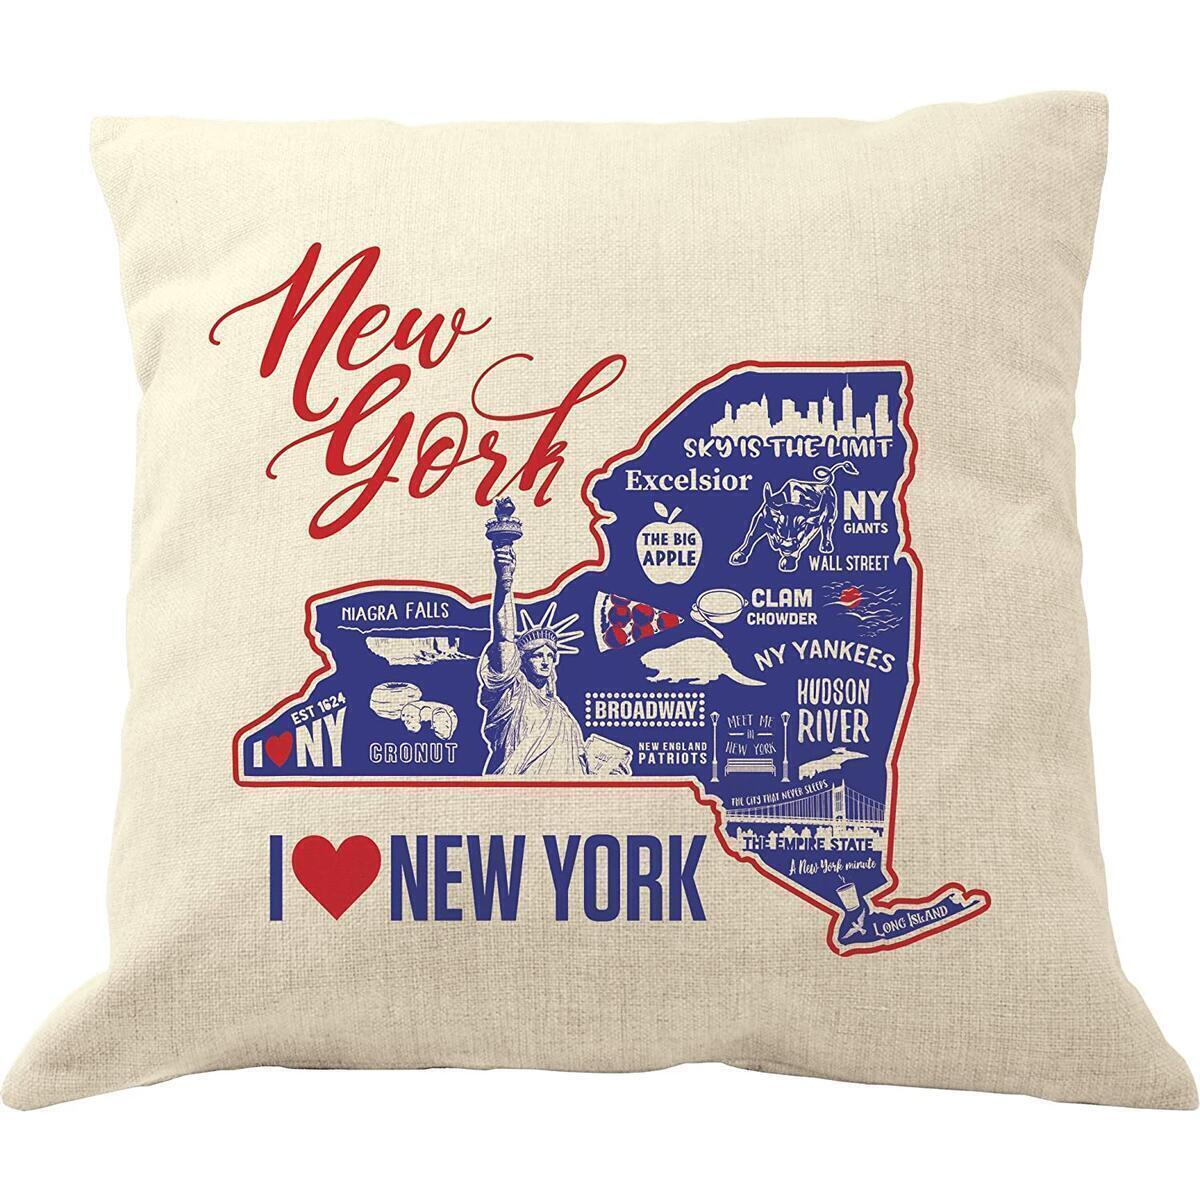 DrupsCo New York Pillow Covers 18x18 - Cotton Linen New York Throw Pillow Case, New York Decorative Pillow